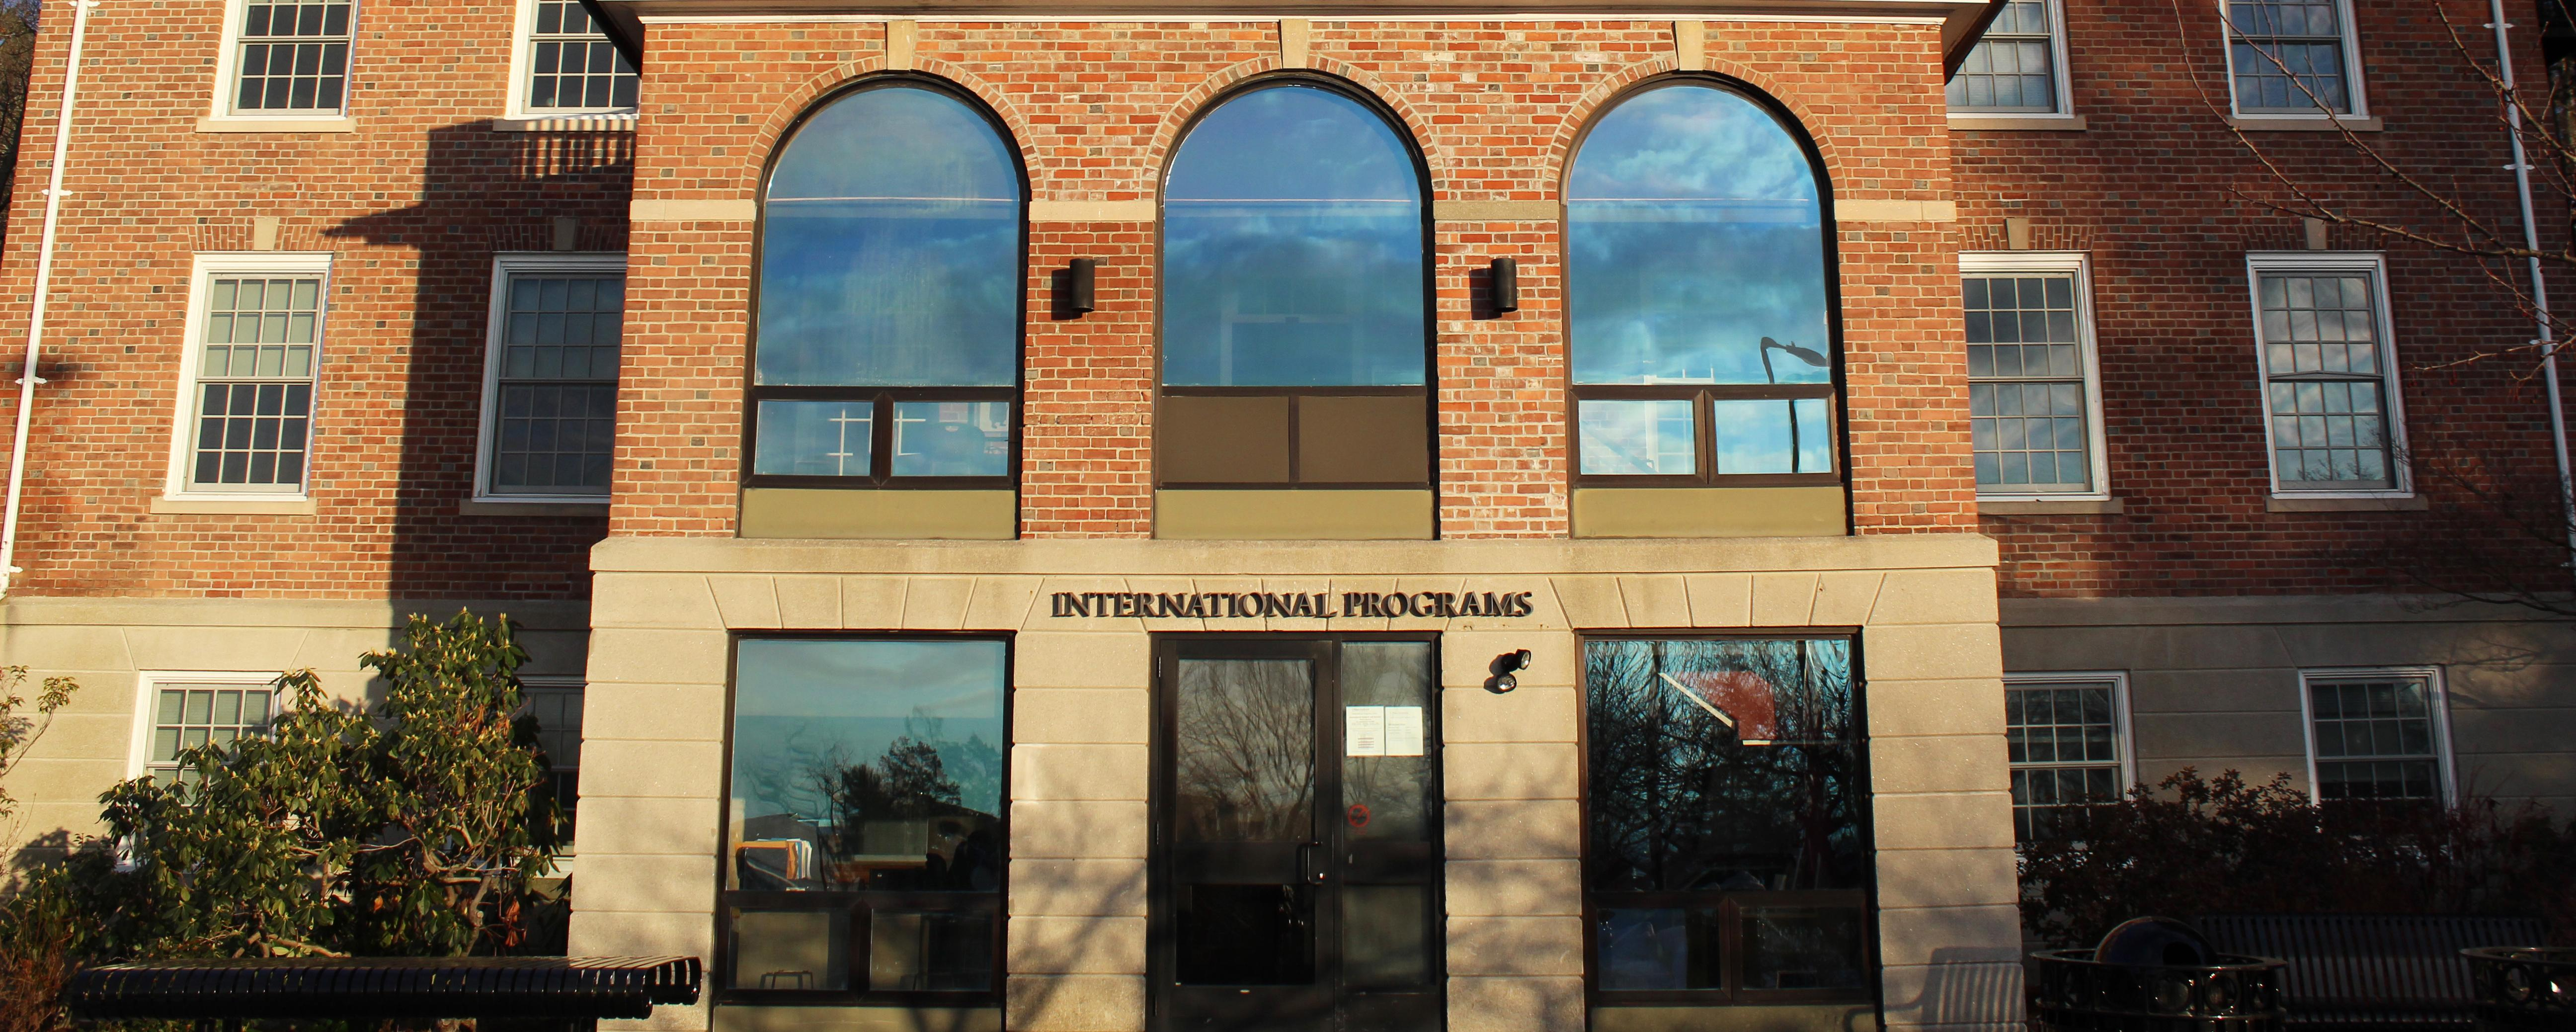 The International Programs Office at UMass Amherst